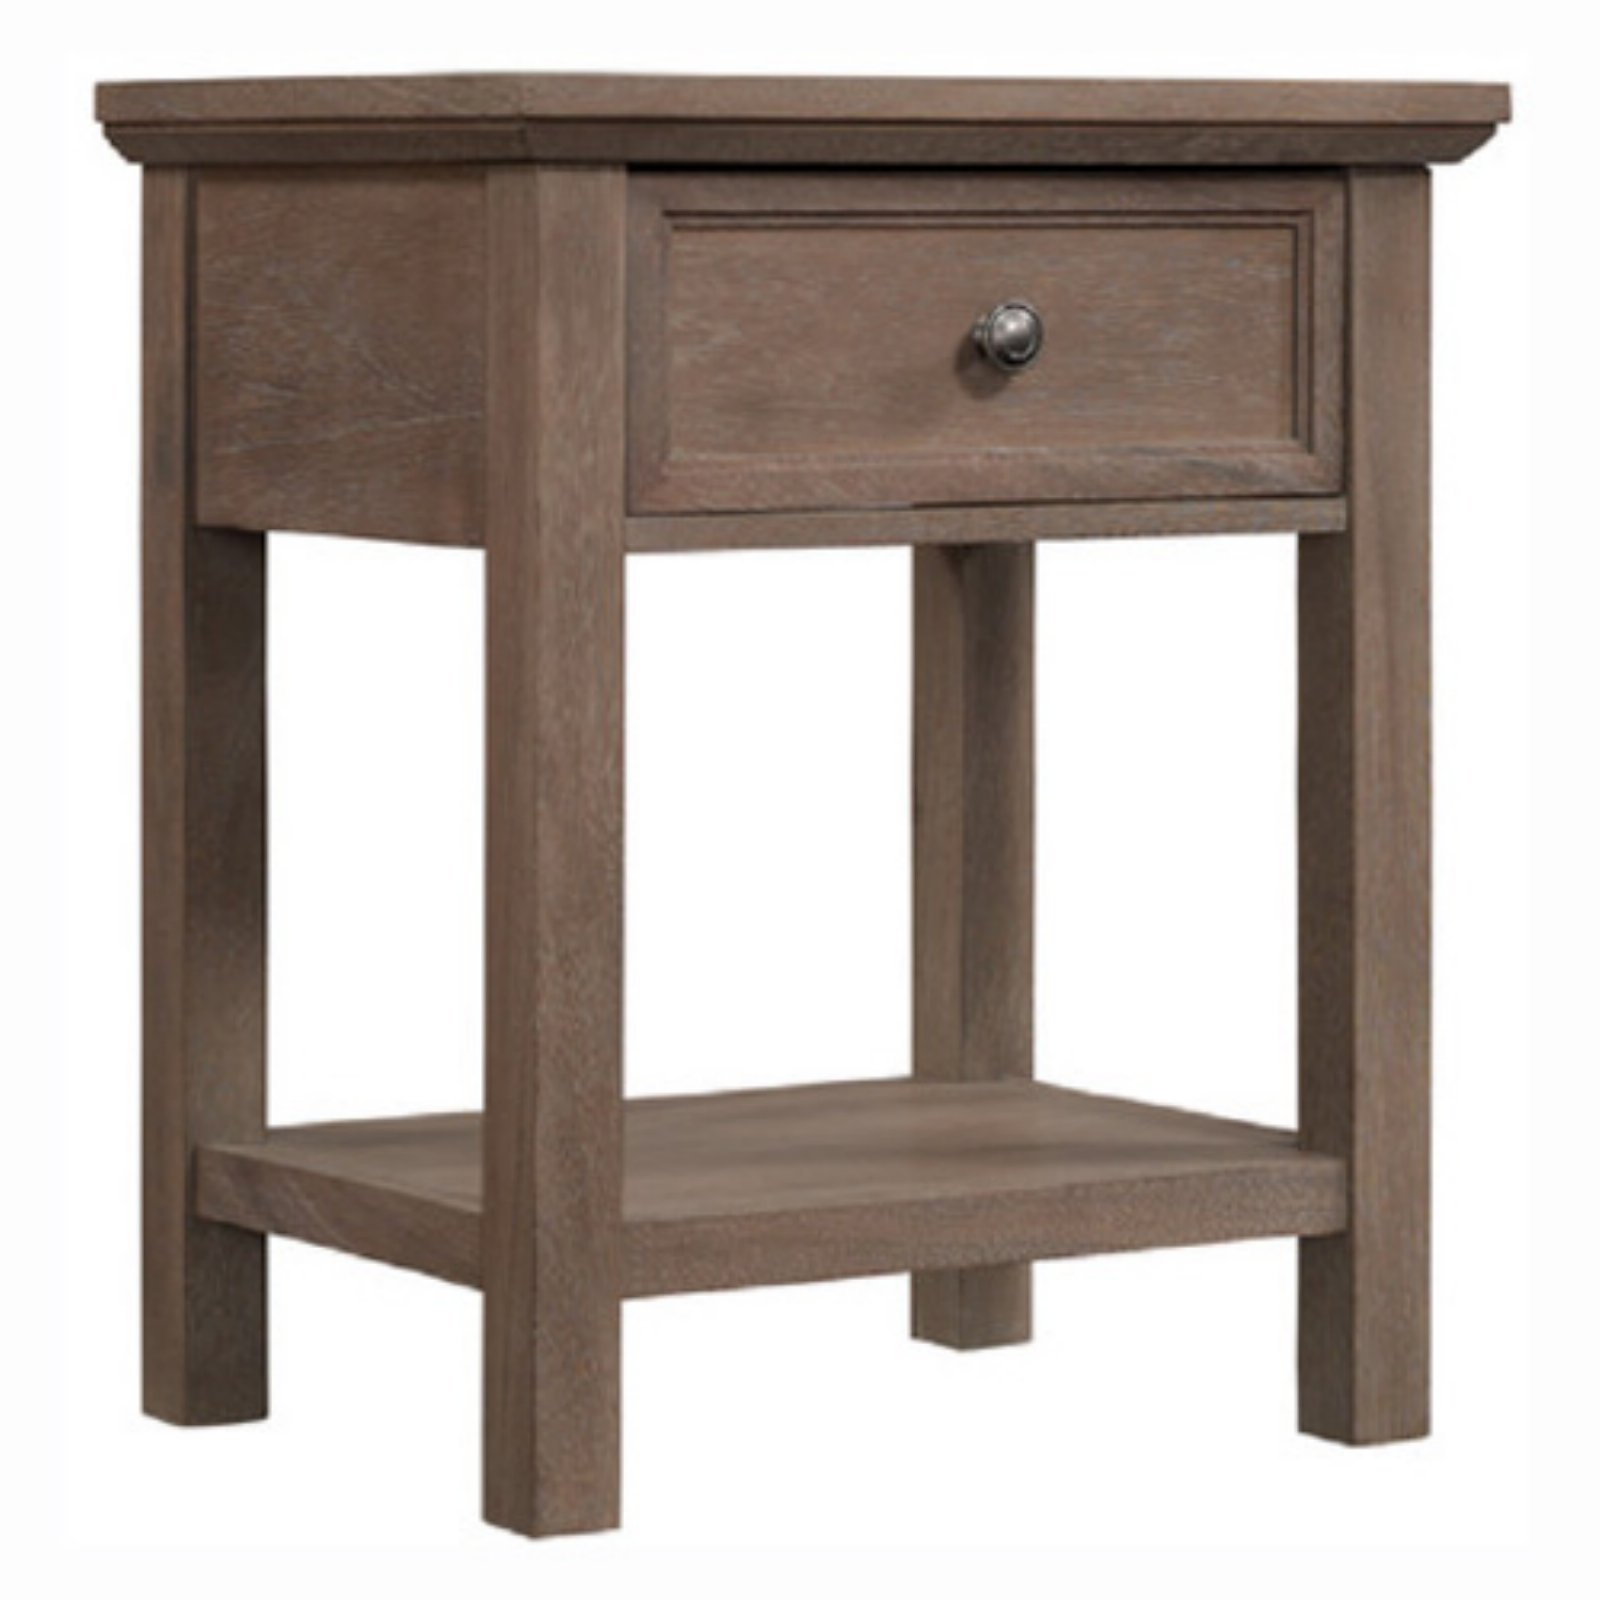 Runfine Rustic 1 Drawer Nightstand